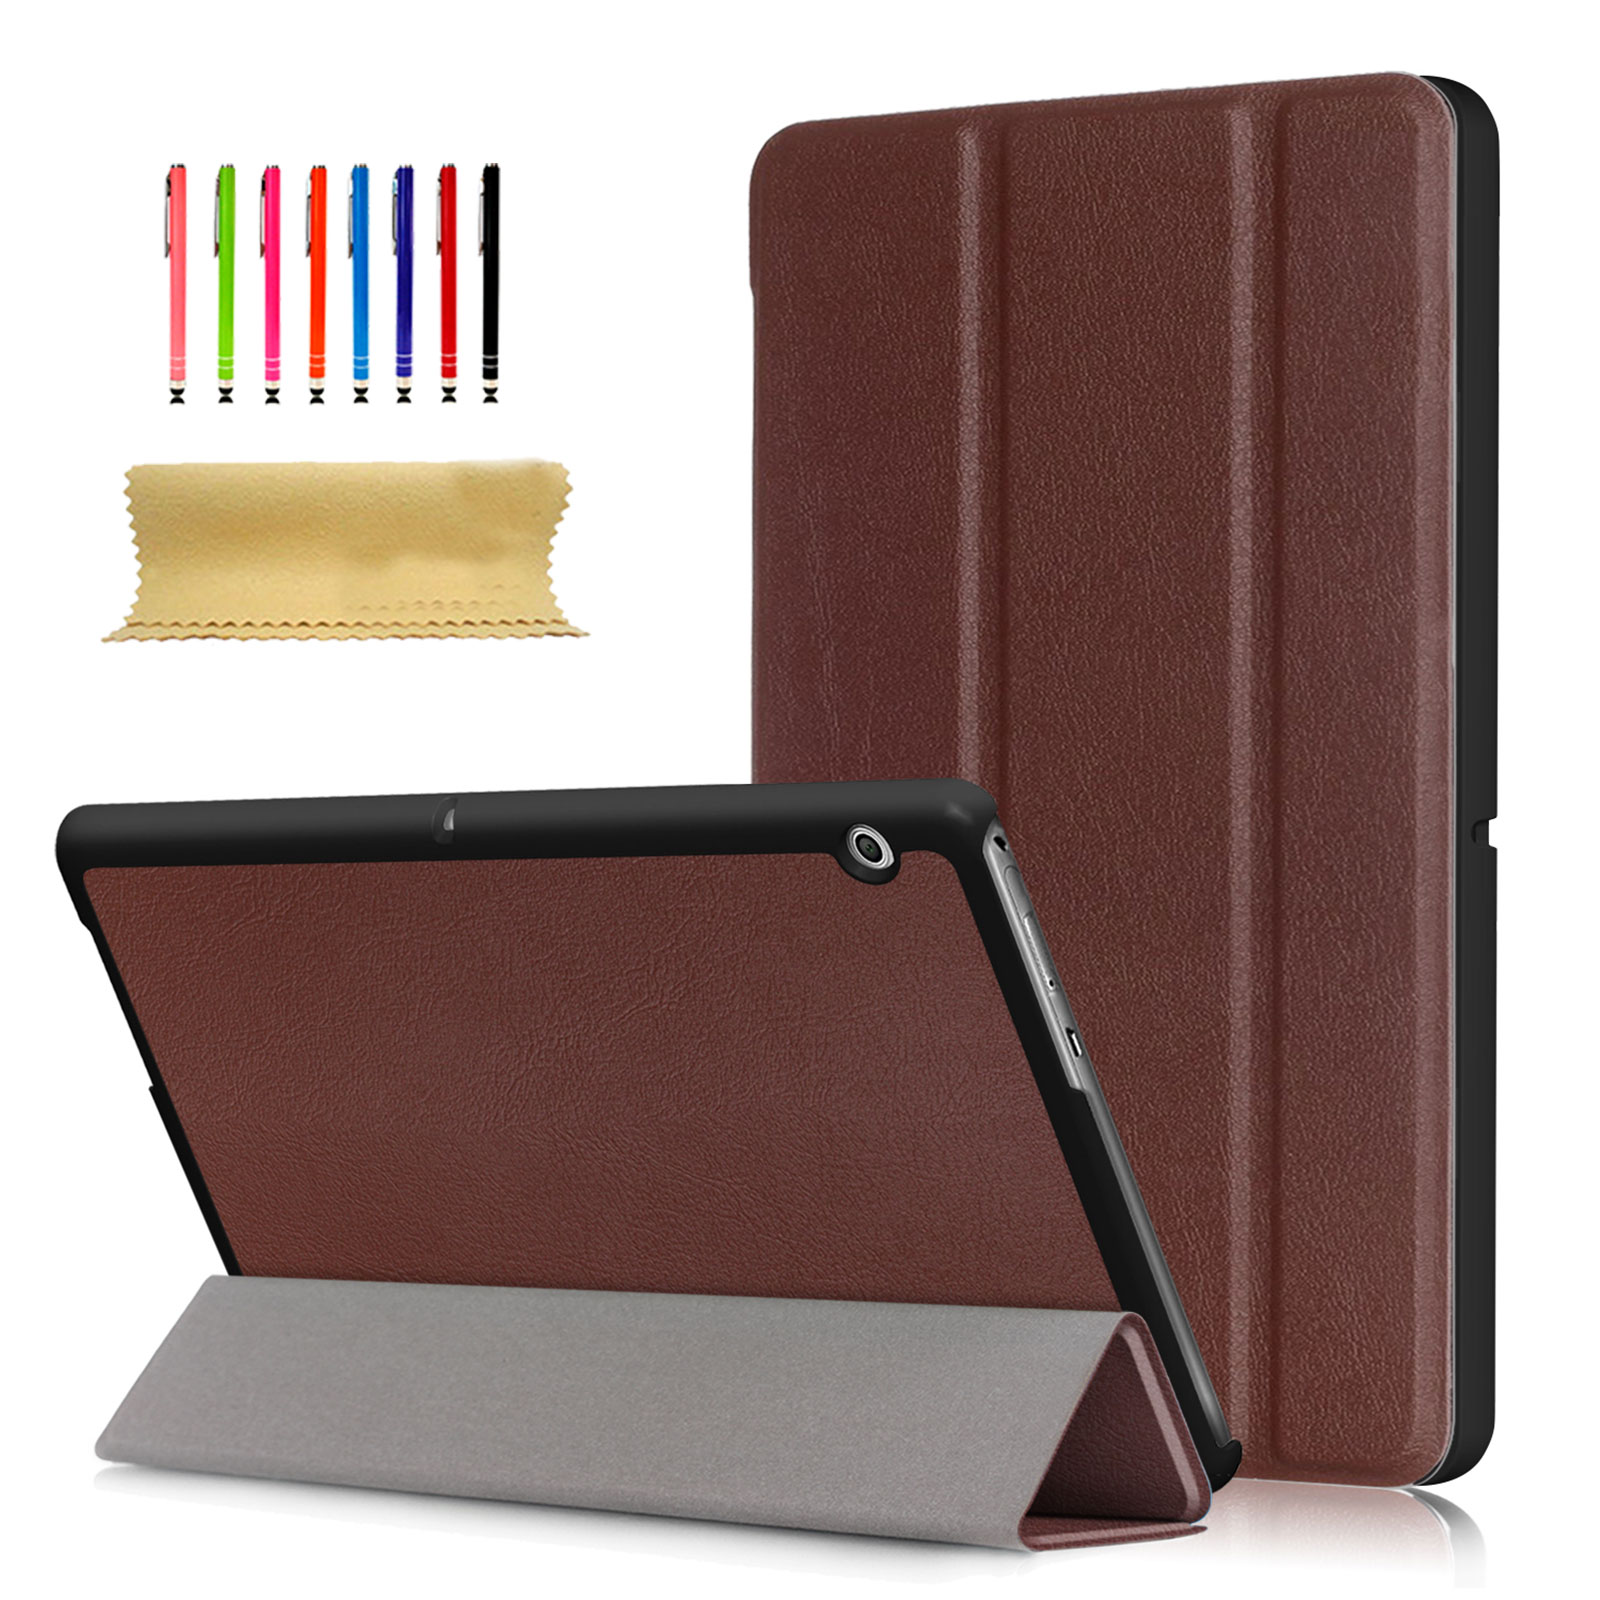 Huawei MediaPad T3 10.0 Inch Case, Goodest Slim Tri-fold Stand Case with Multi-angle Viewing PU Leather Hard Shell Case for Huawei MediaPad T3 10.0 Inch Android Tablet, Brown